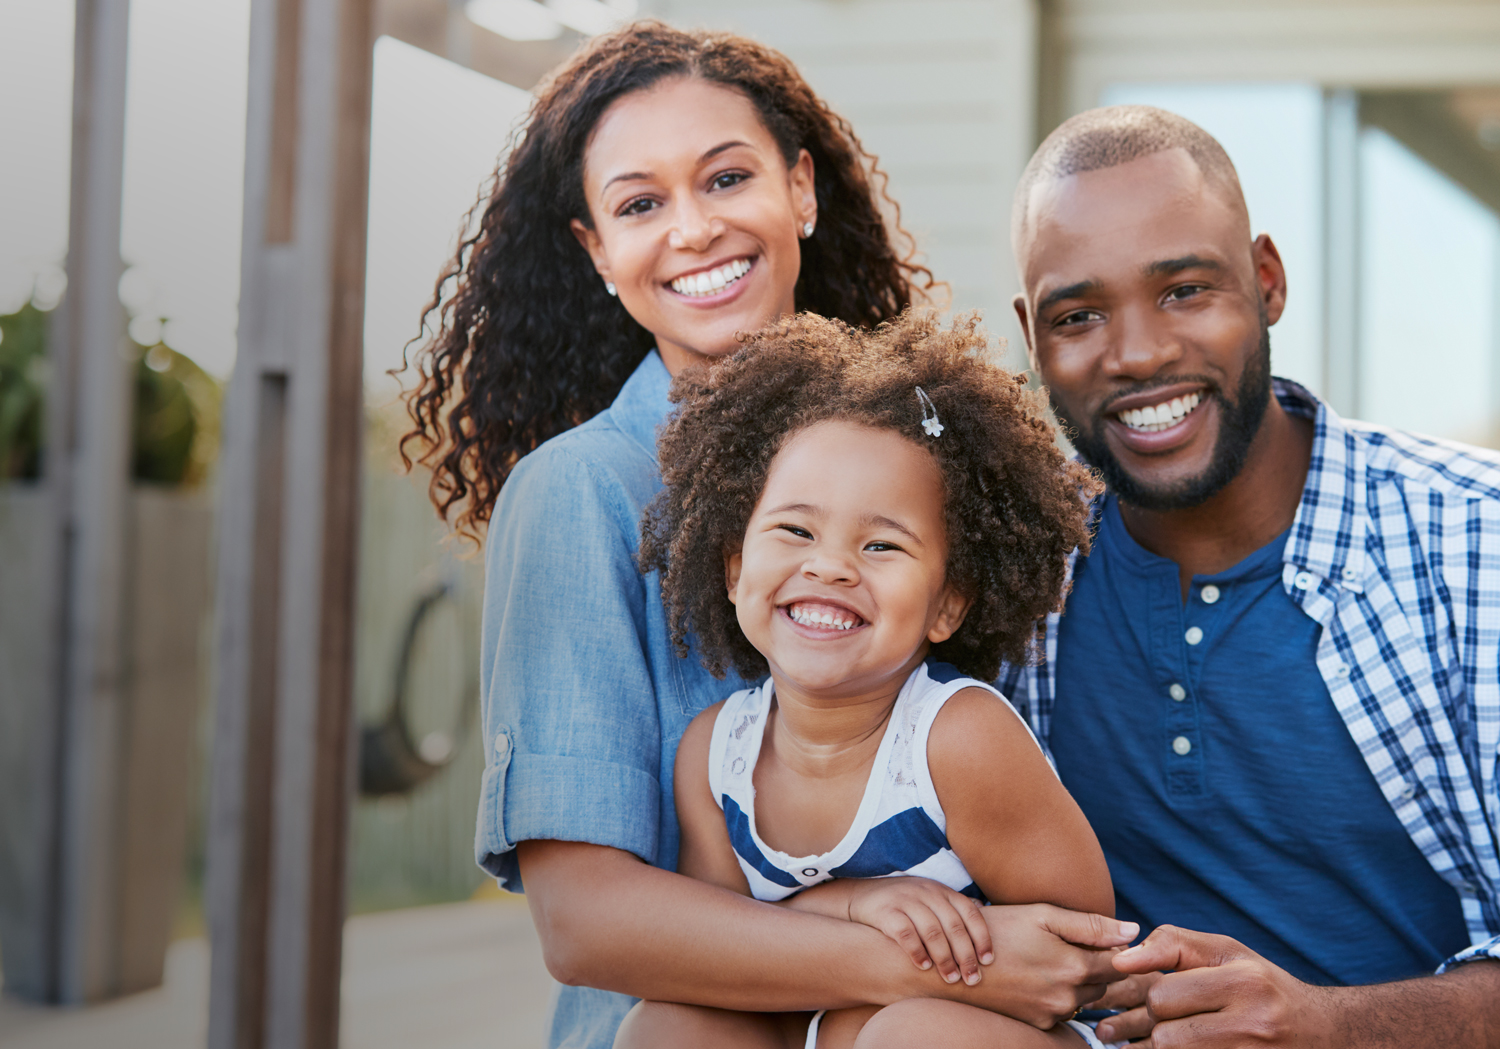 bigstock-Young-black-family-embracing-o-